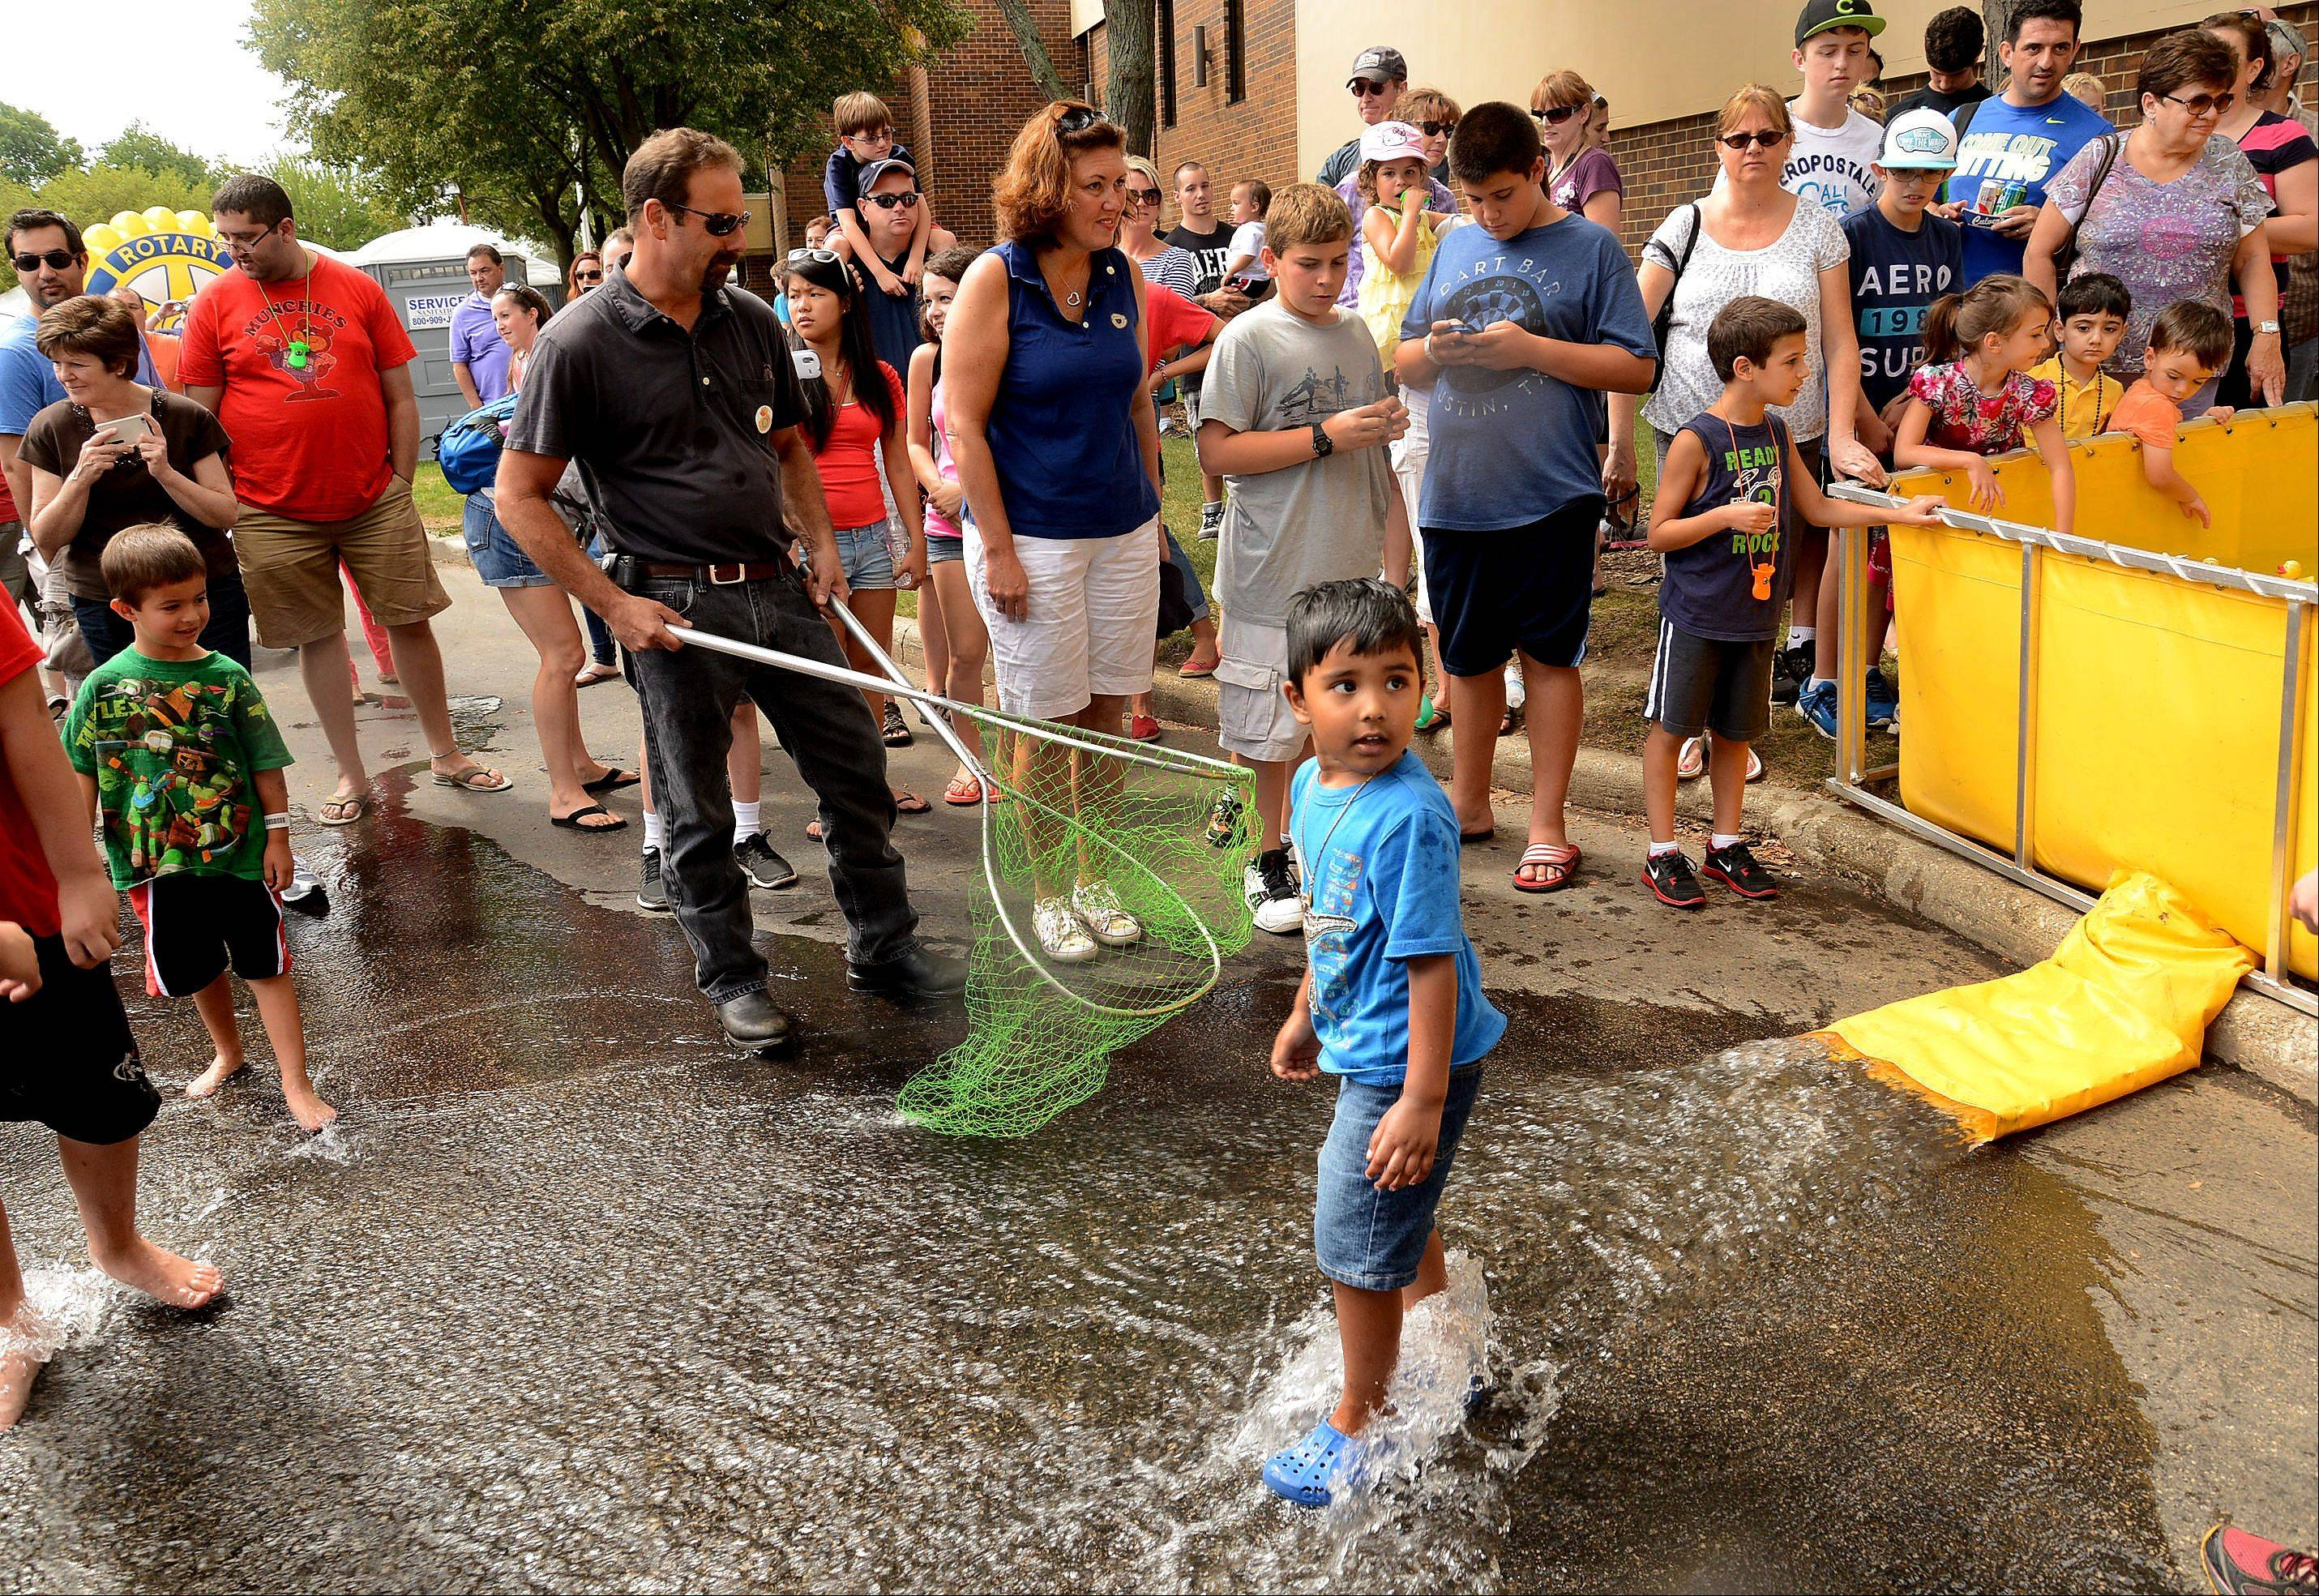 4-year-old Vedanth Menon of Buffalo Grove wades in the water while waiting for the ducks to flow out of the pond during the Rotary Rubber Duck race held on the fifth and final day of Buffalo Grove Days.